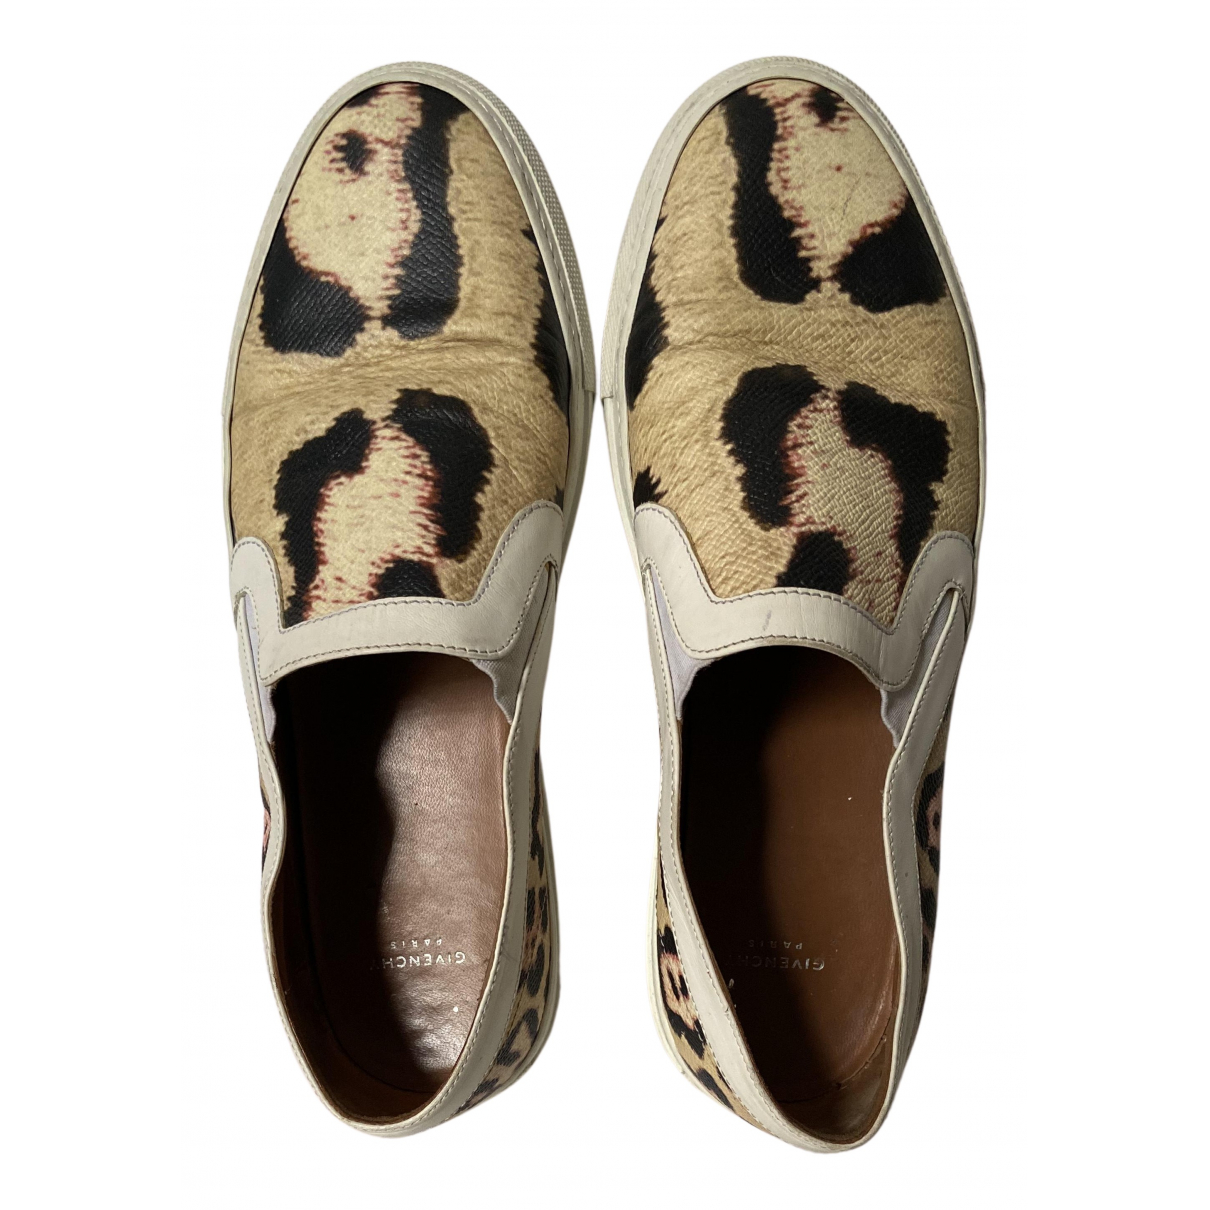 Givenchy N Beige Leather Trainers for Women 38 EU